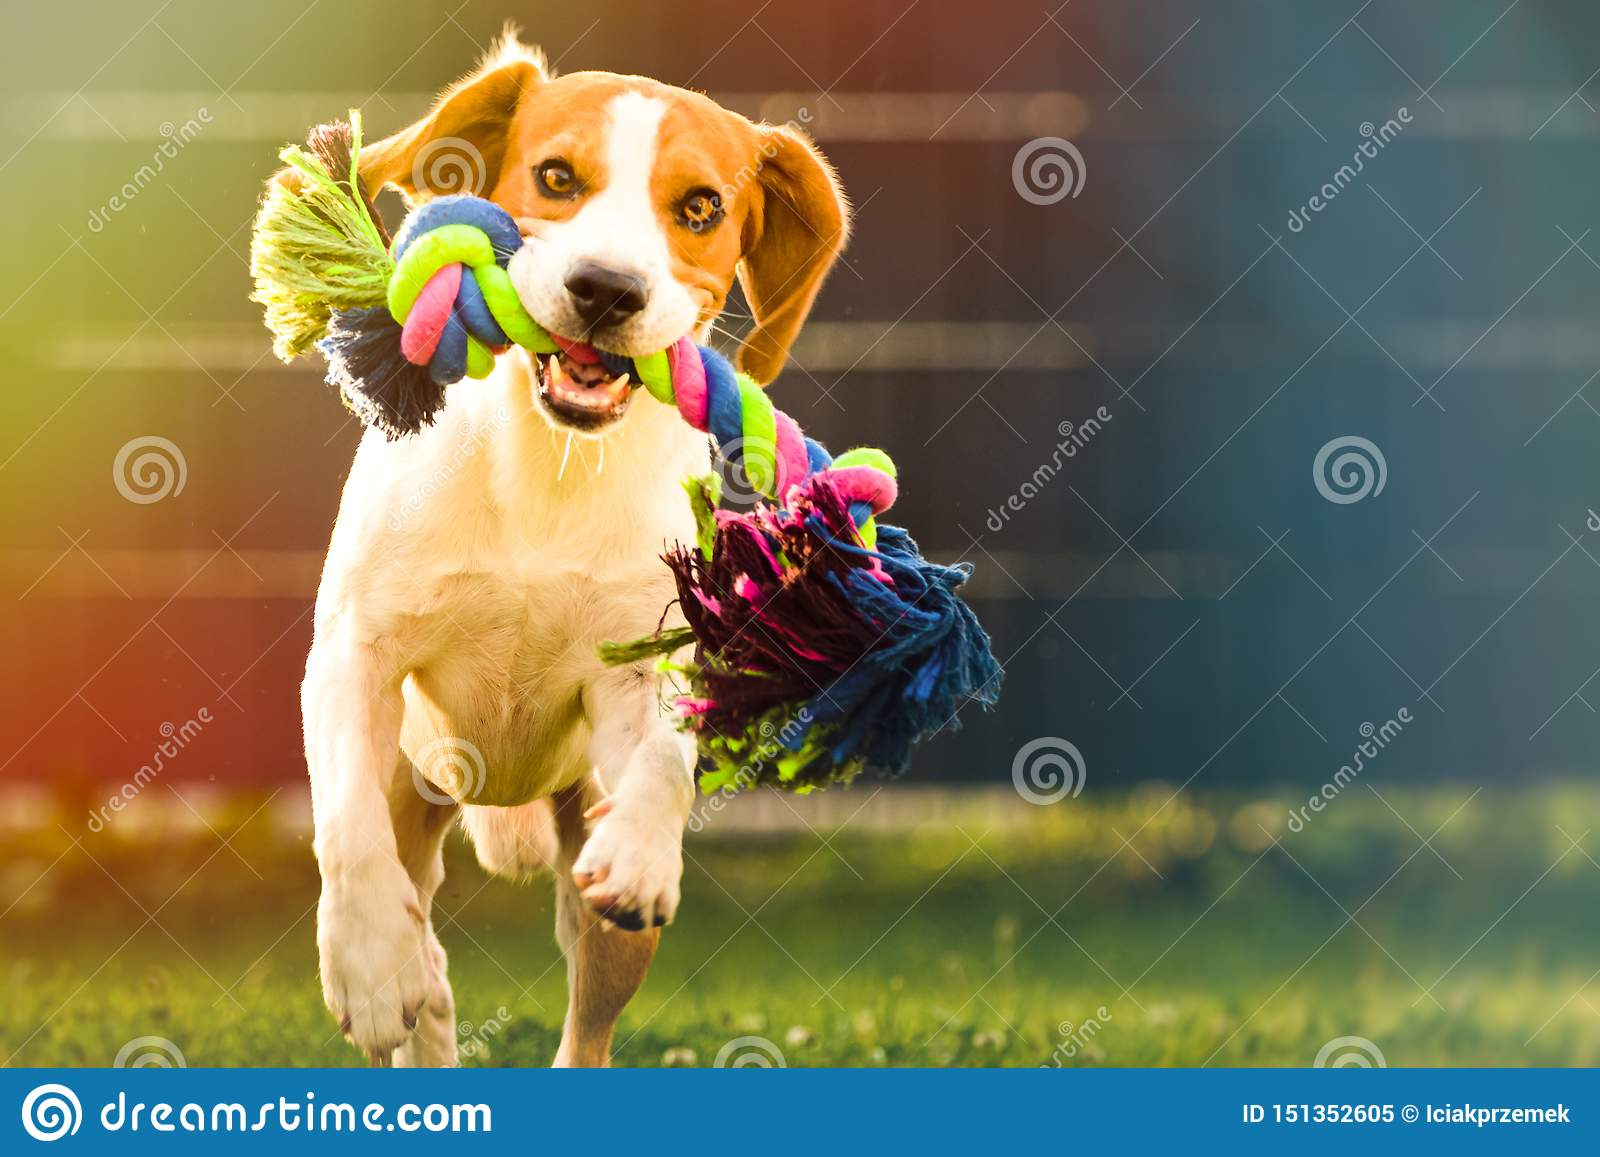 Beagle dog runs in garden towards the camera with colorful toy